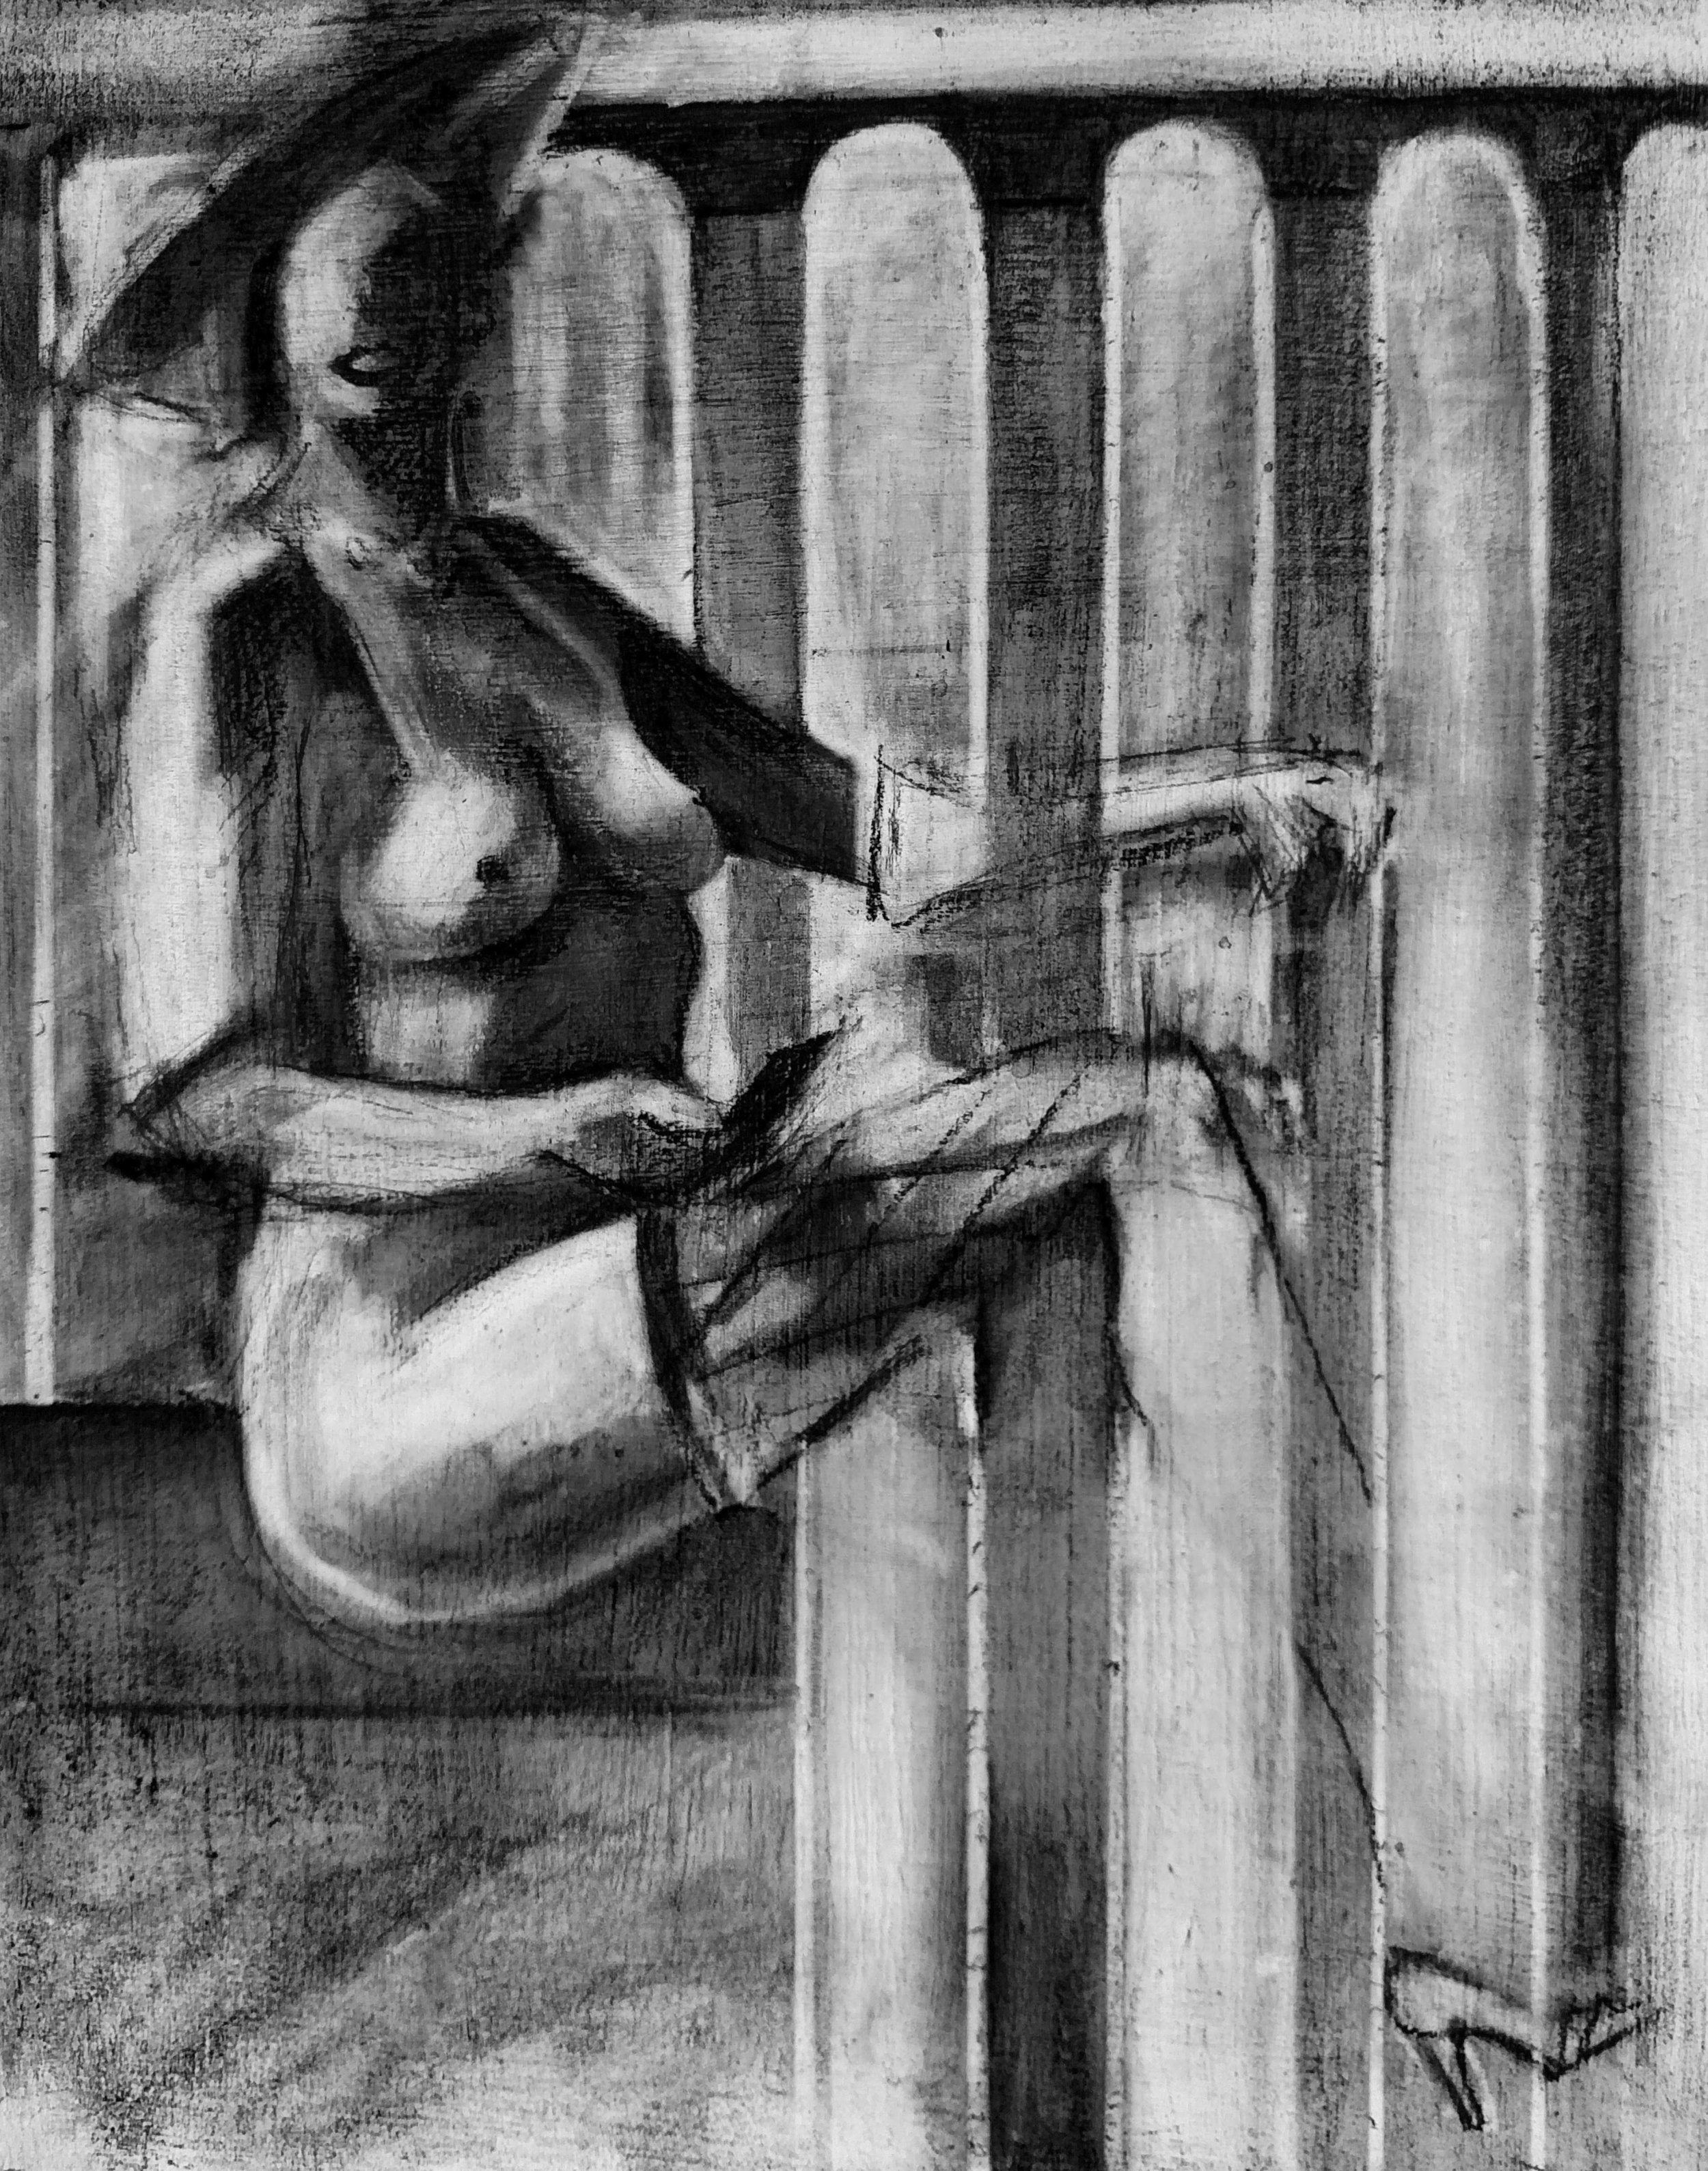 Nude Study 2     Charcoal on Gessoed Wood Panel    2016 7in x 9in